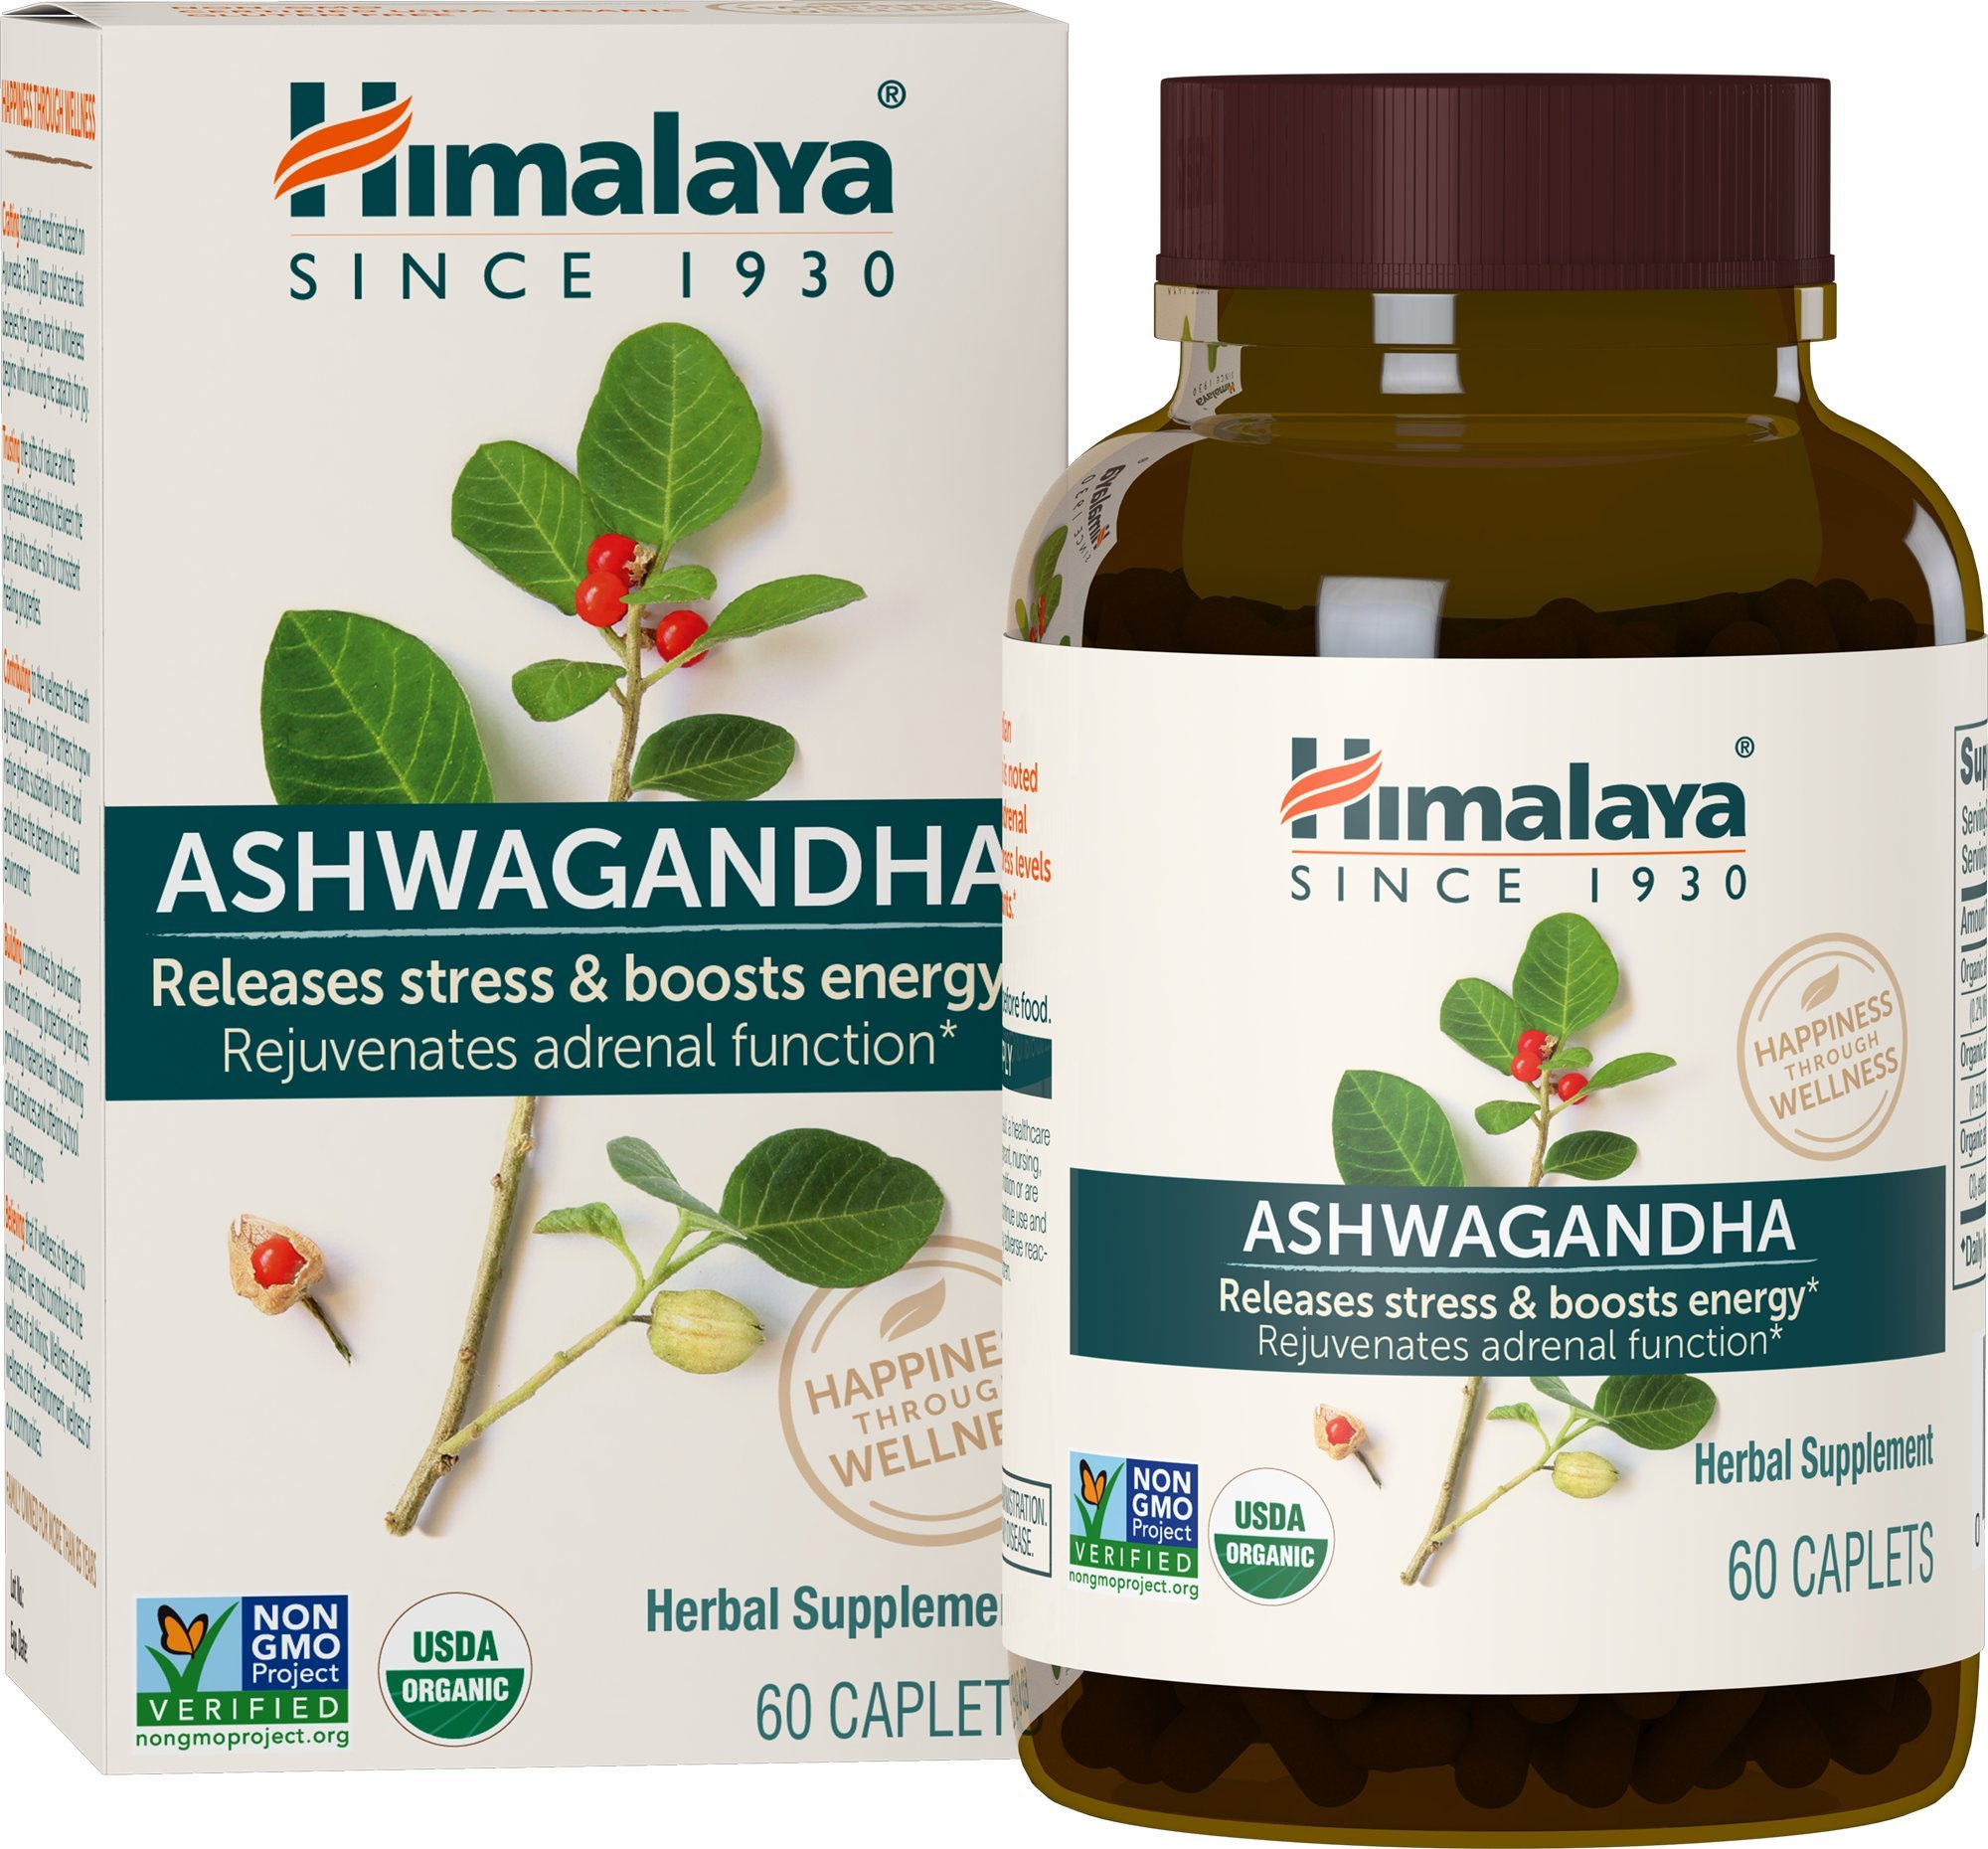 Himalaya Organic Ashwagandha, Adaptogen for Stress-relief, Cortisol level support and Energy Boost, 2 Month Supply (1PACK)